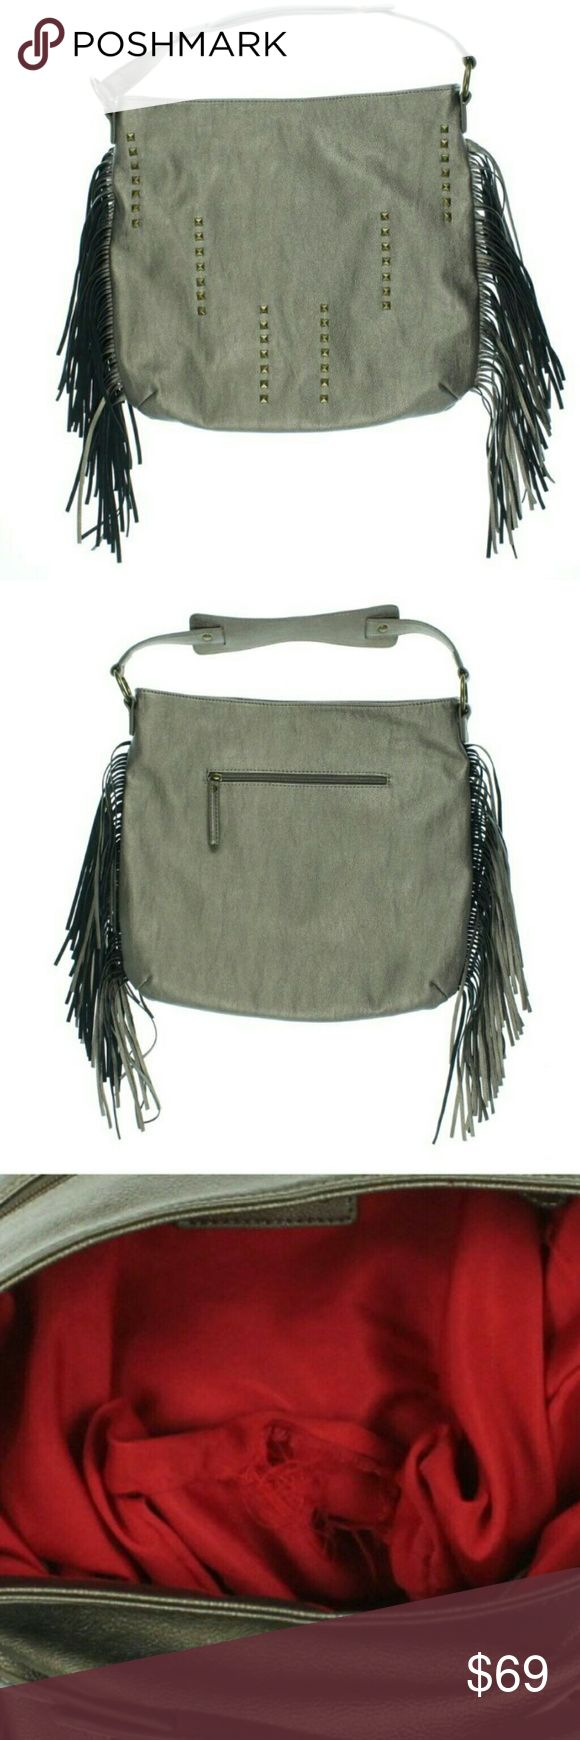 New Carlos Santana Faux Leather Metallic Fringe Ba This awesome brown metallic Hobo Handbag is a Carlos by Carlos Santana  it's new, but It has a 4 inch seam separation inside lining, outside is in perfect condition.  Details:  Manufacturer: Carlos Santana   Size: Large  Manufacturer Color: Brown Metallic  Condition: New with defects  Style type: Hobo Handbag  Handle type: Single  Closure: Snap  Inside zip, slip and cell pockets   Measures 14 x 15 1/2 x 2 1/2  Strap drop: 6 inches  Material…